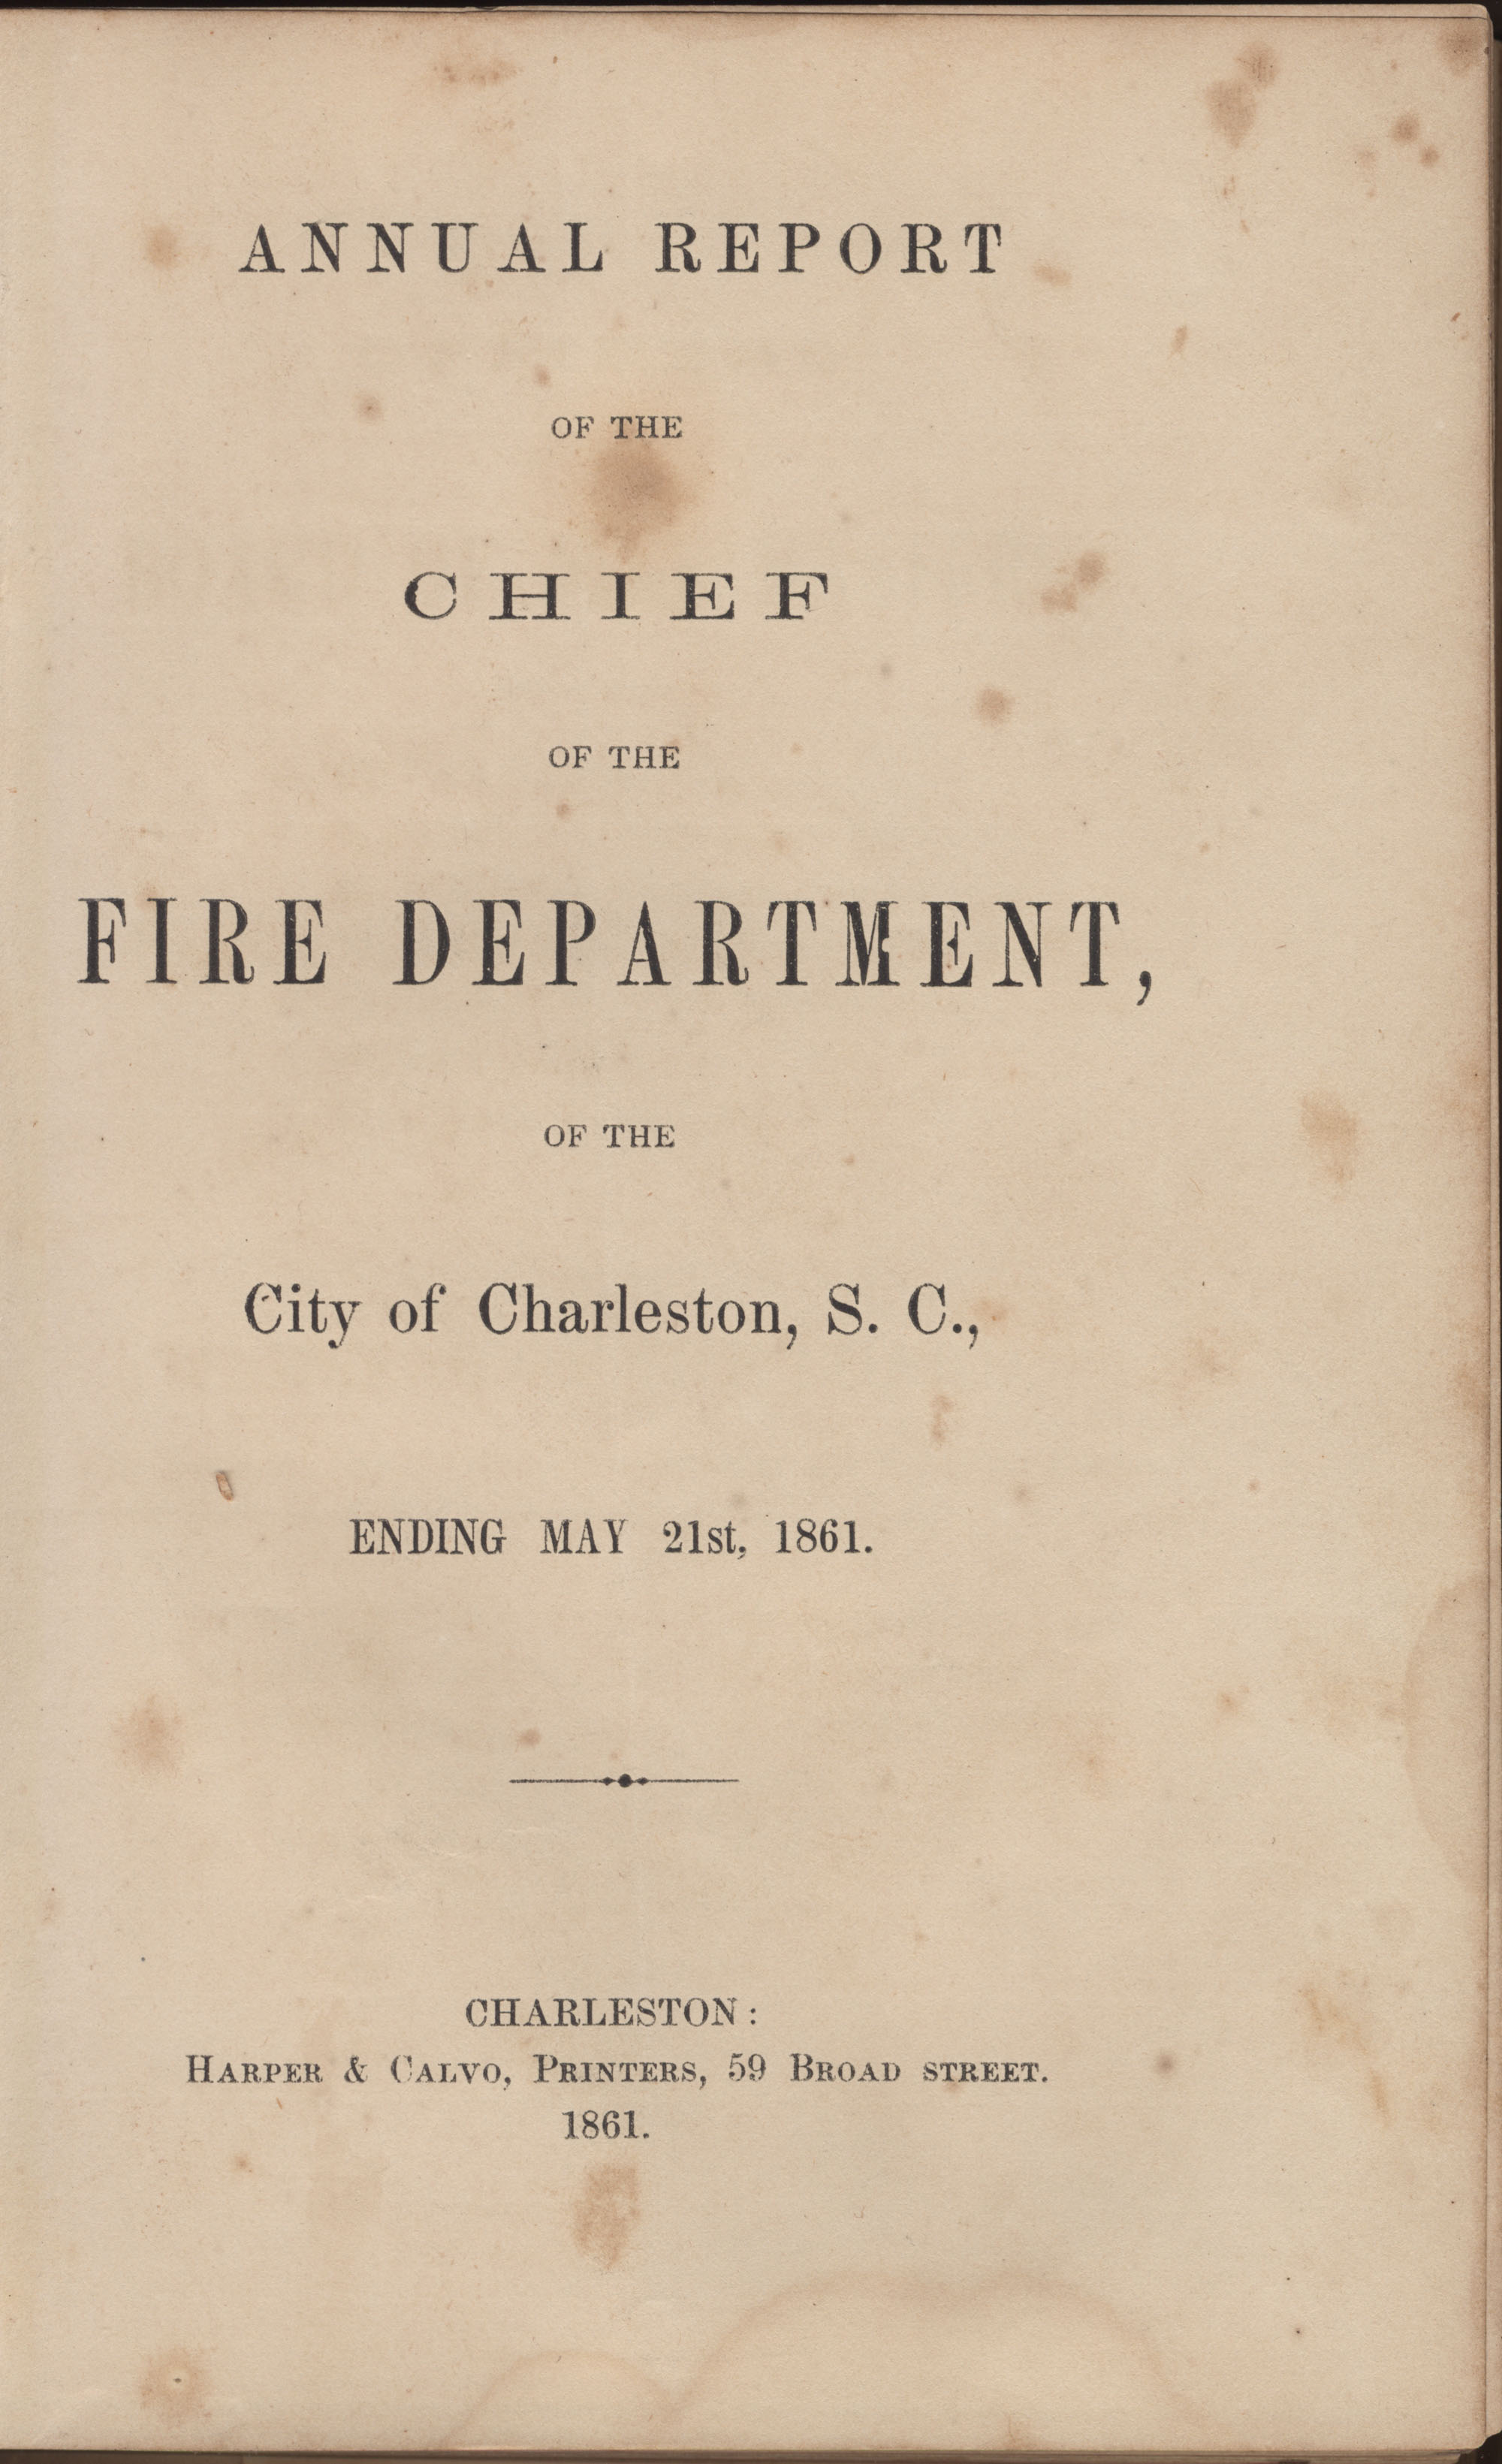 Annual Report of the Chief of the Fire Department of the City of Charleston, page 64